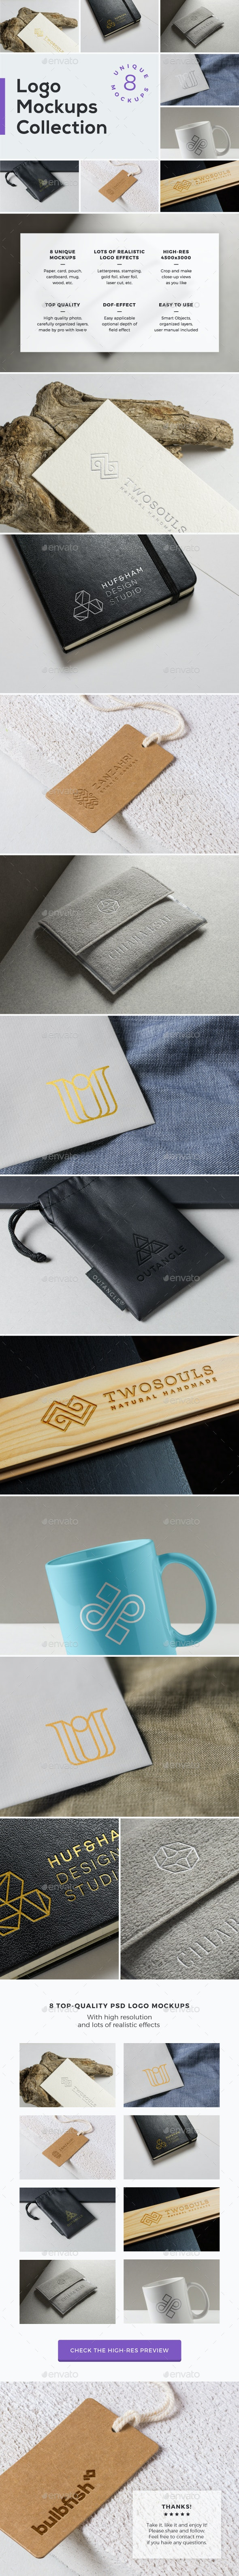 Logo Mockups Collection Vol. 2 - Logo Product Mock-Ups